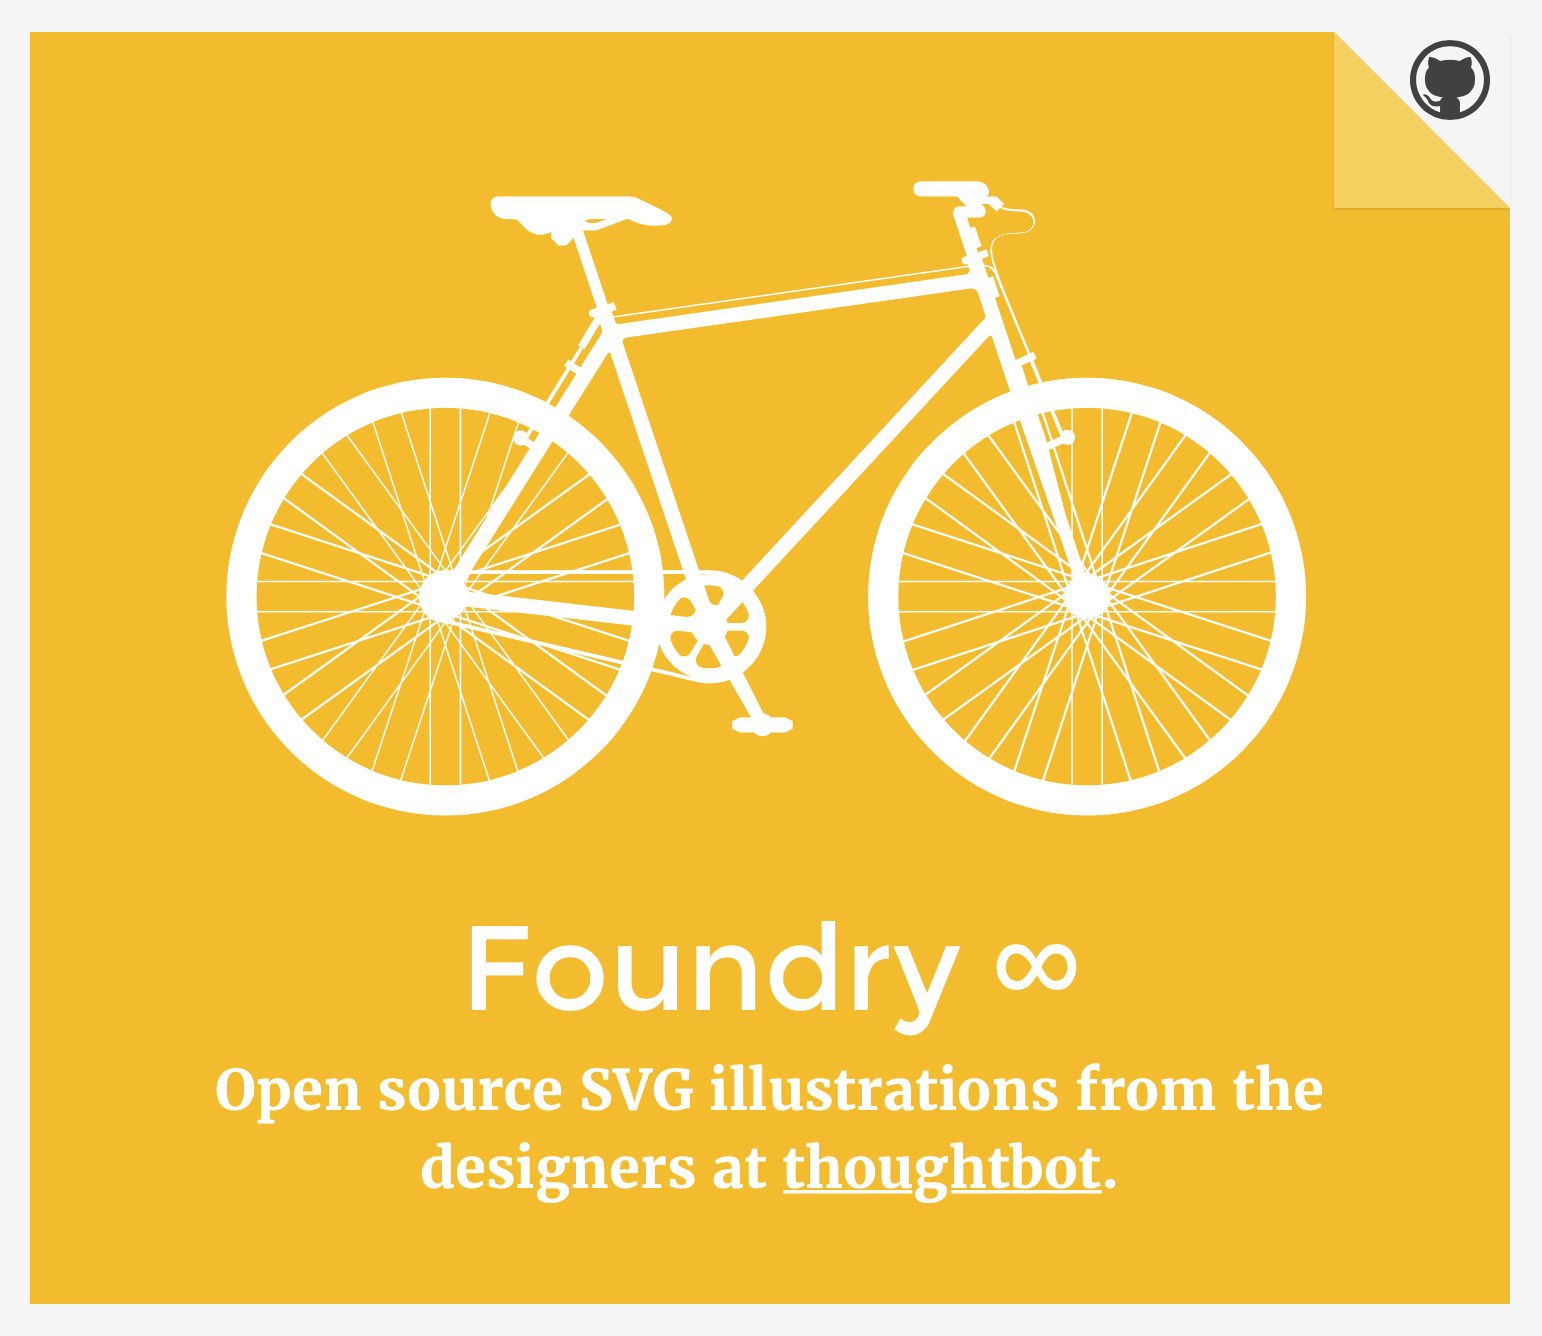 Foundry - Open source SVG illustrations from the designers at thoughtbot